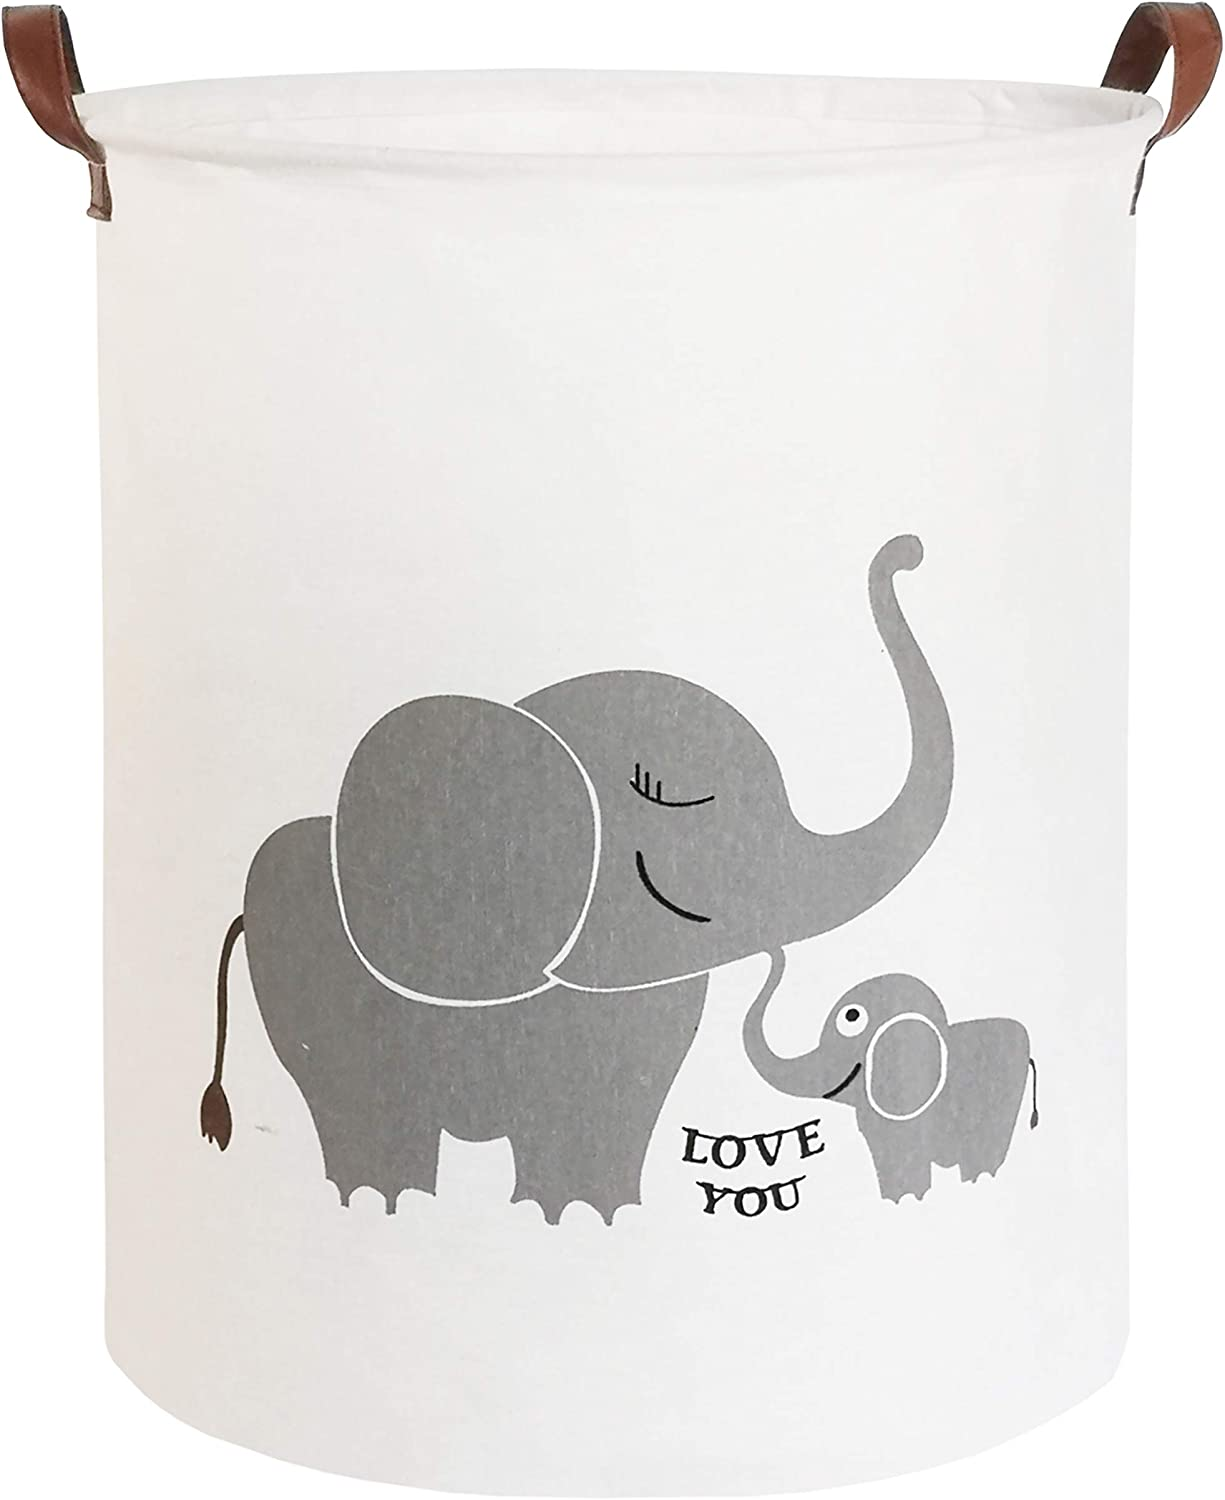 CLOCOR Collapsible Round Storage Bin/Large Storage Basket/Clothes Laundry Hamper/Toy Storage Bin (Love Elephant)